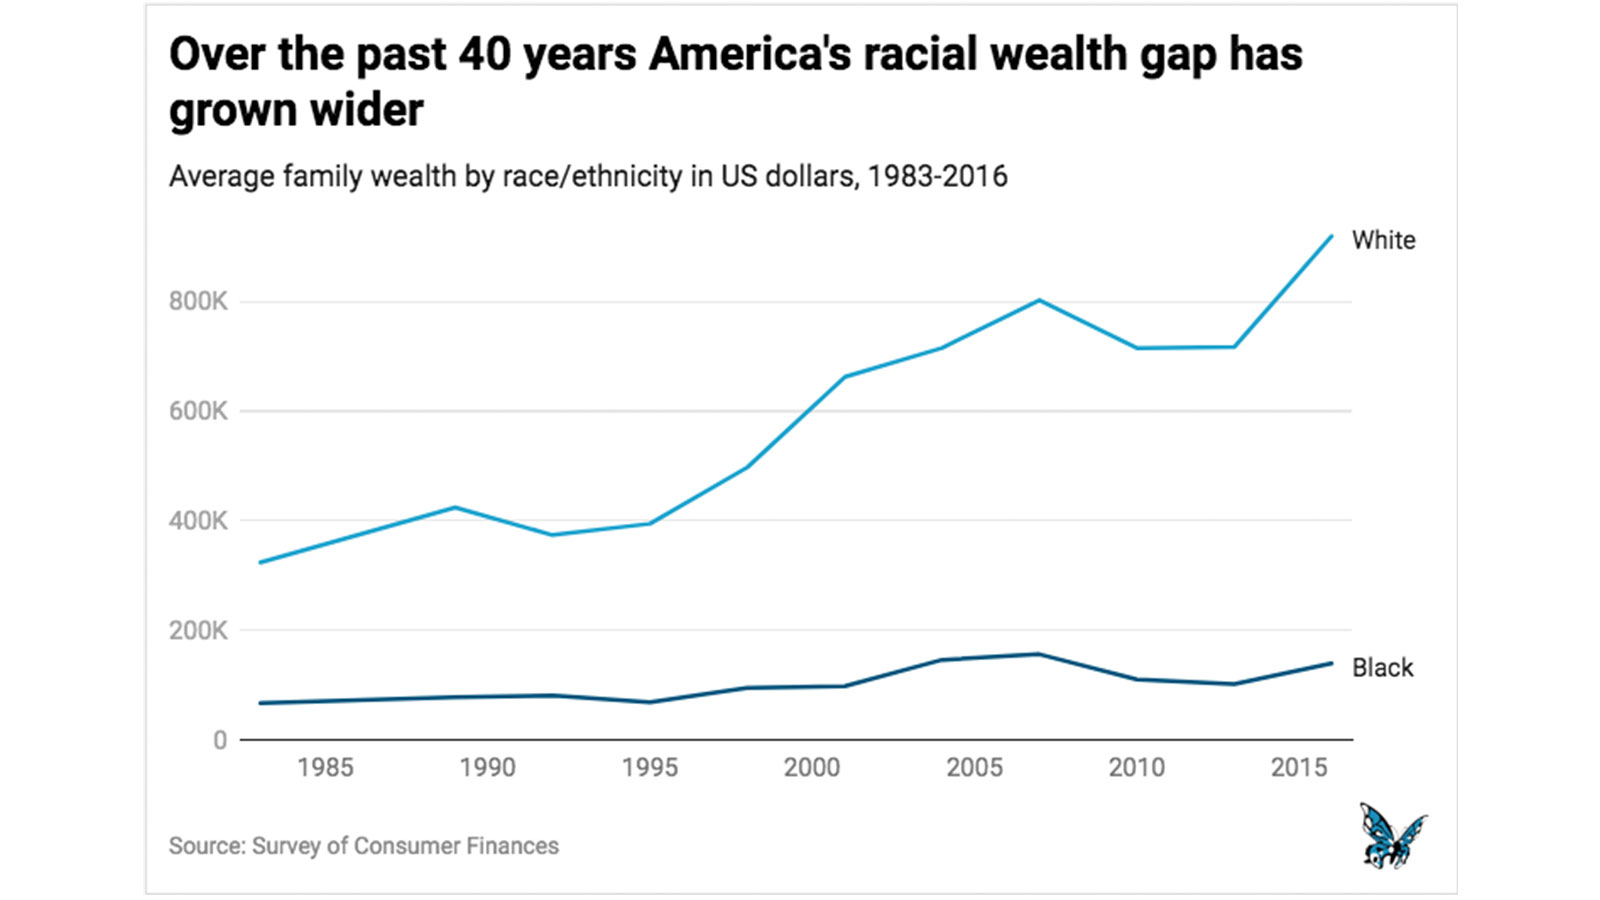 Over the past 40 years America's racial wealth gap has grown wider.